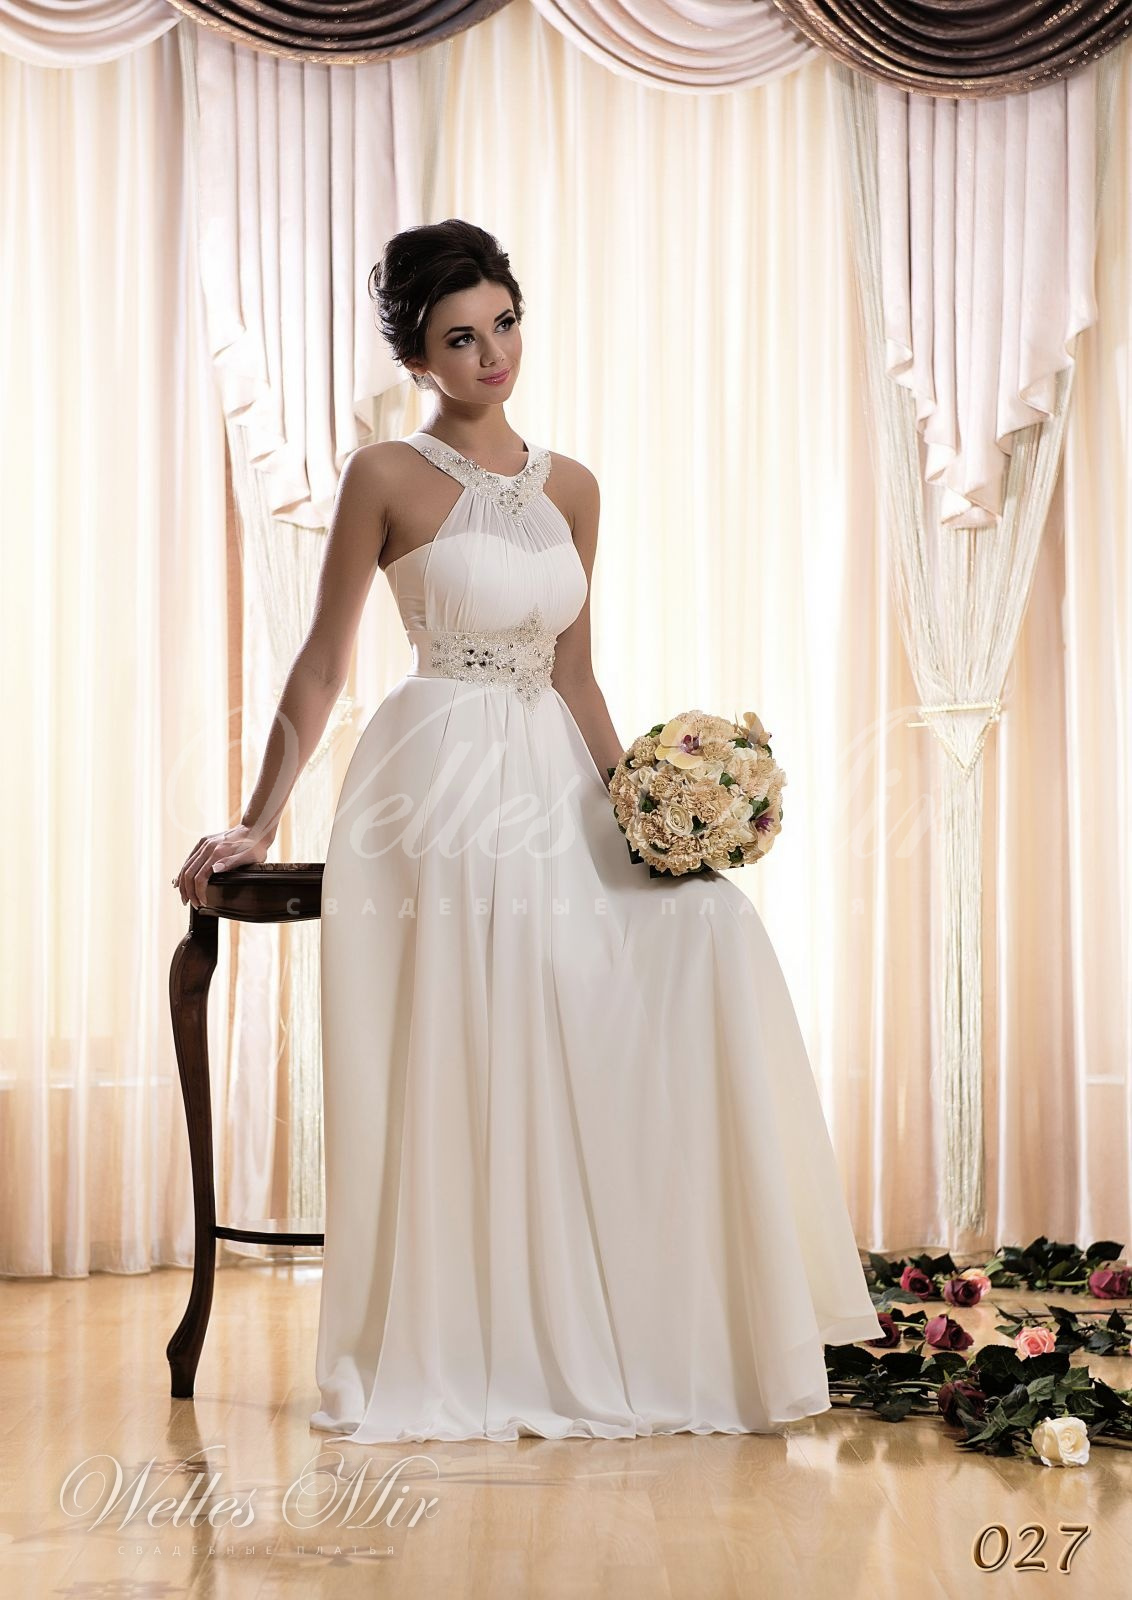 Wedding dresses 027